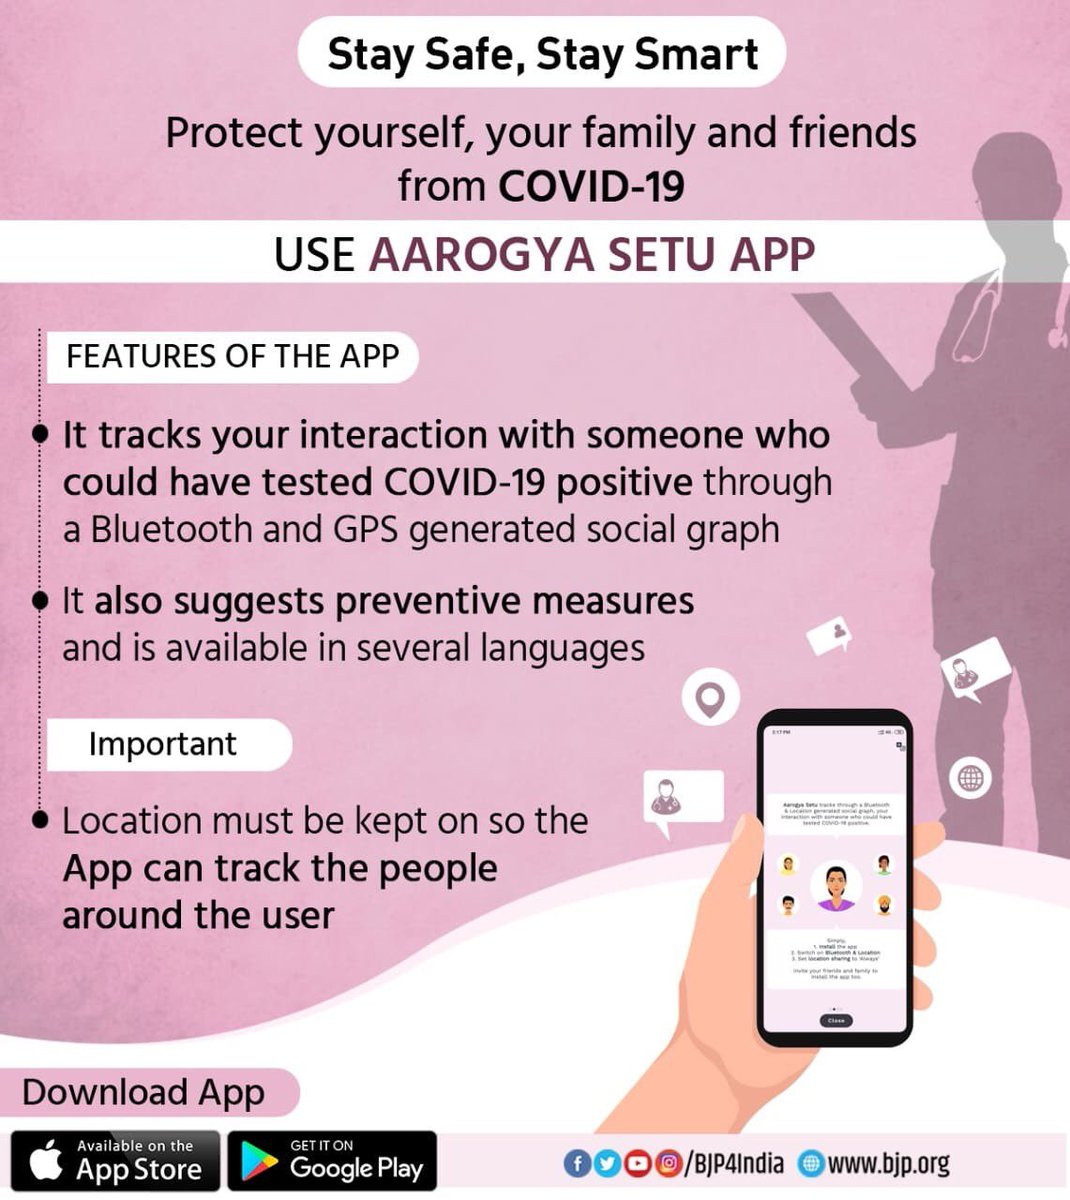 Down load & install #AarogyaSetuApp now & stay safe ... #IndiaFightsCorona pic.twitter.com/Esep8GHWYh